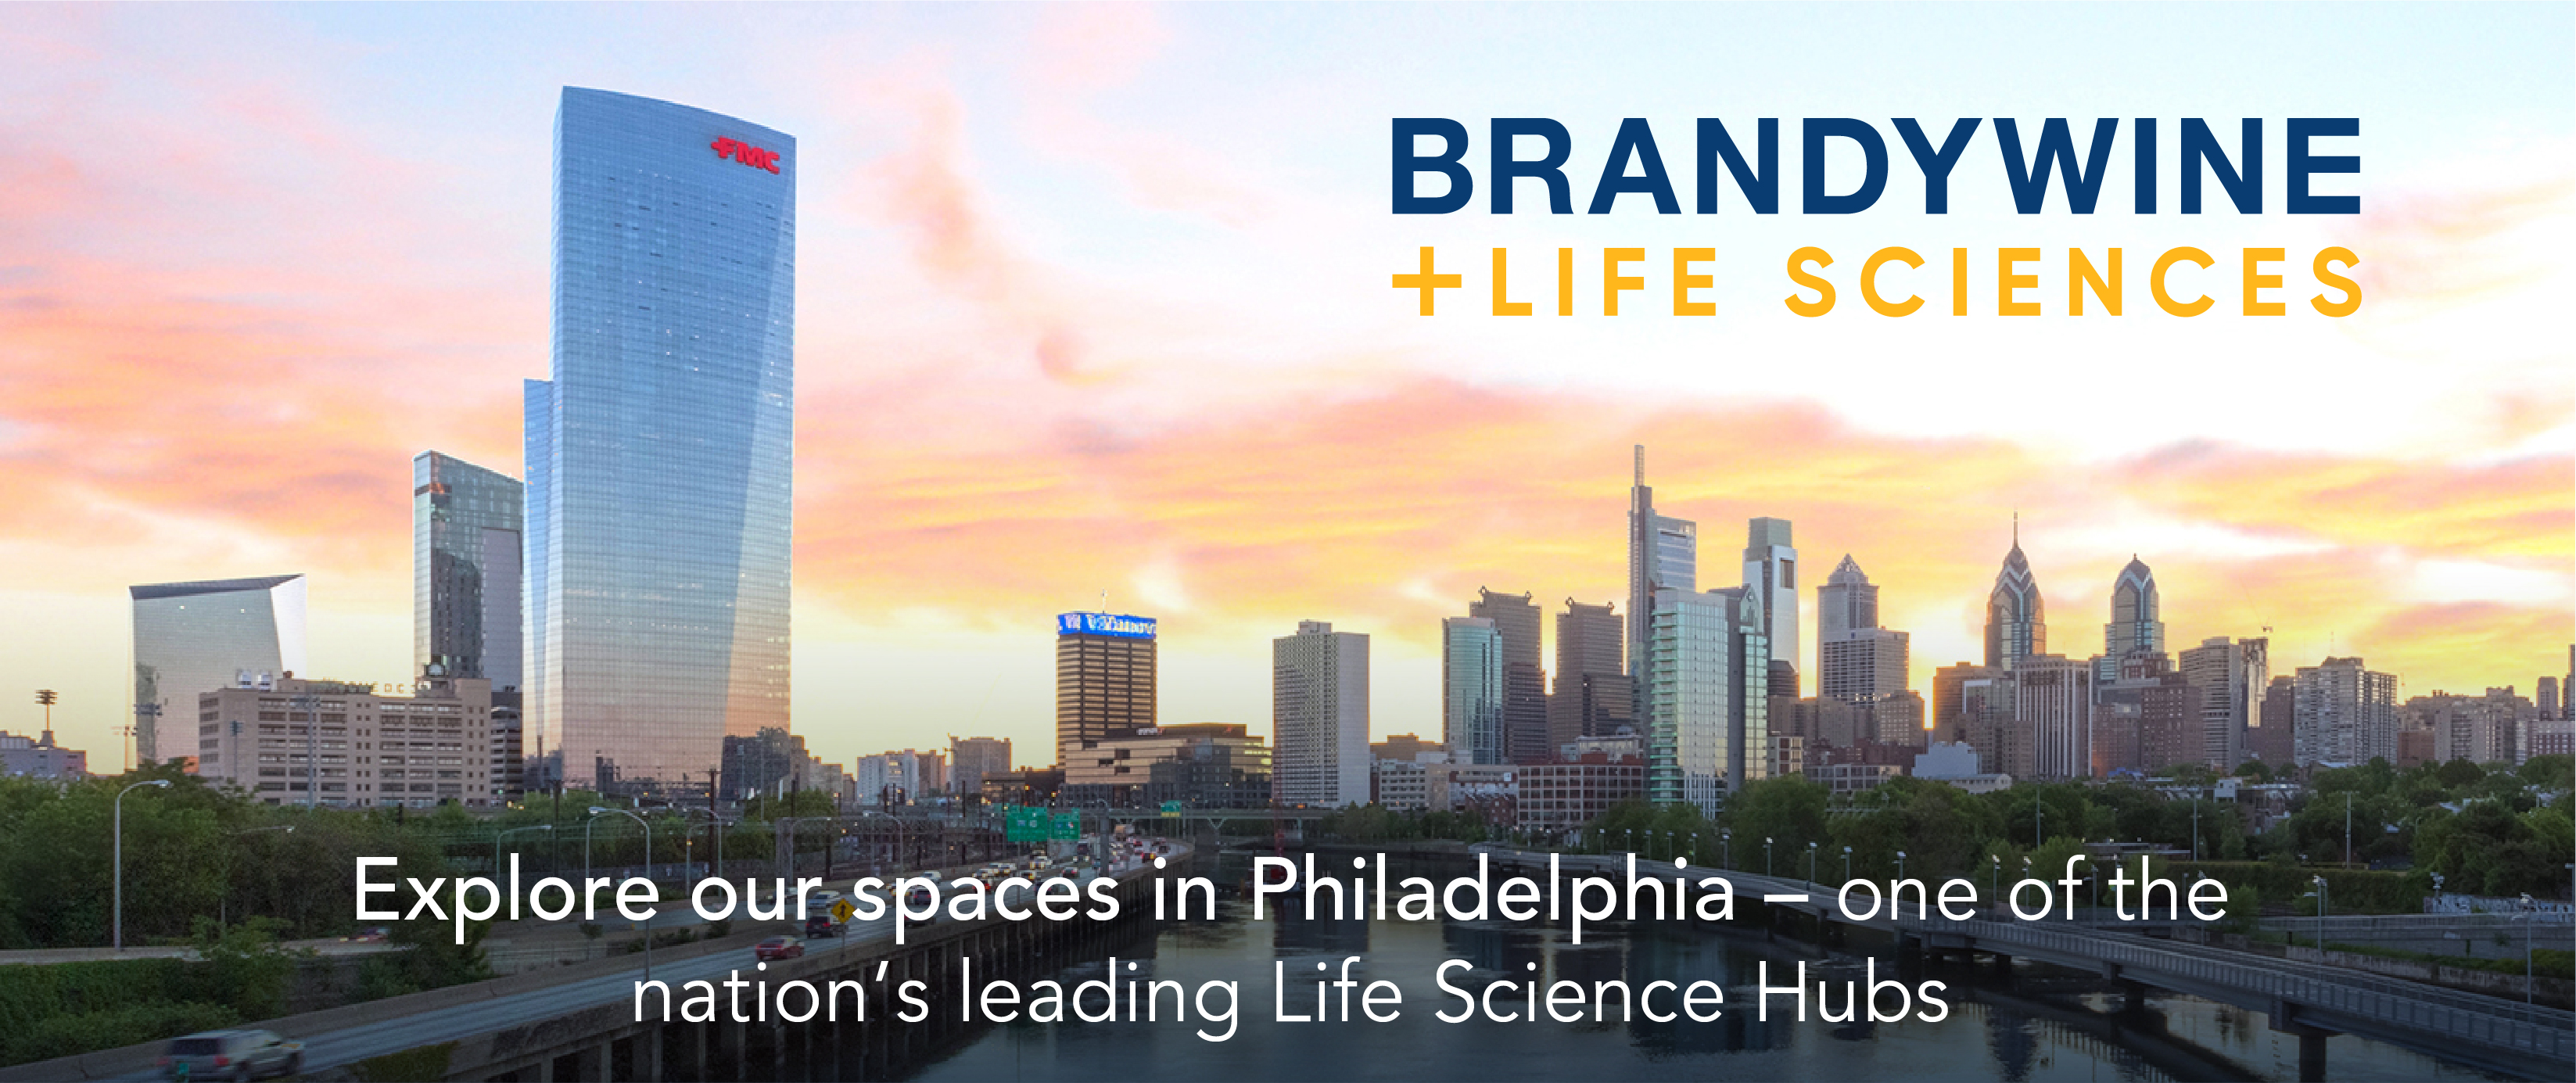 Brandywine Life Sciences